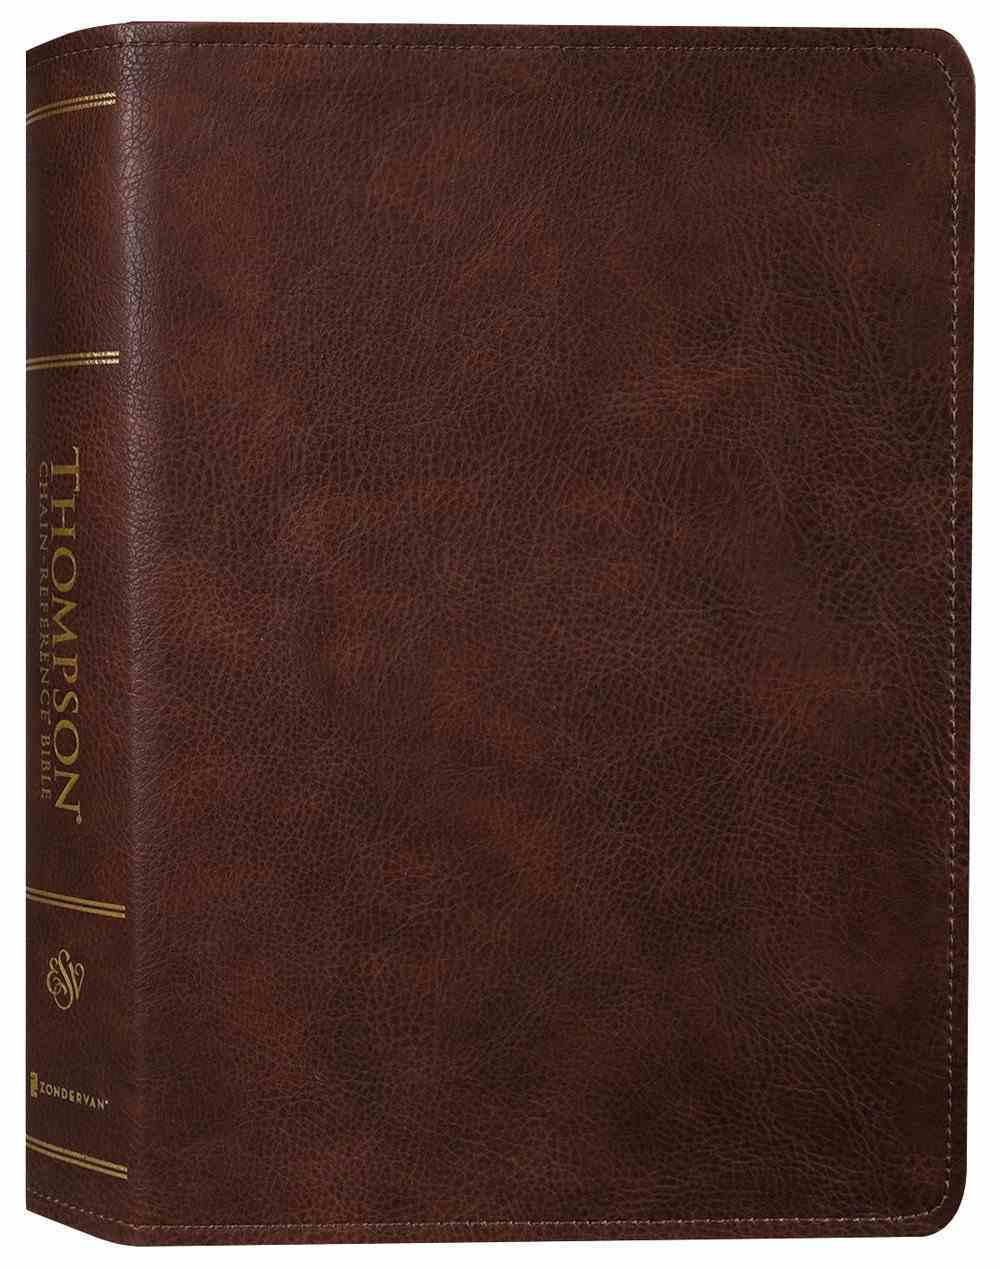 ESV Thompson Chain-Reference Bible Brown (Red Letter Edition) Premium Imitation Leather